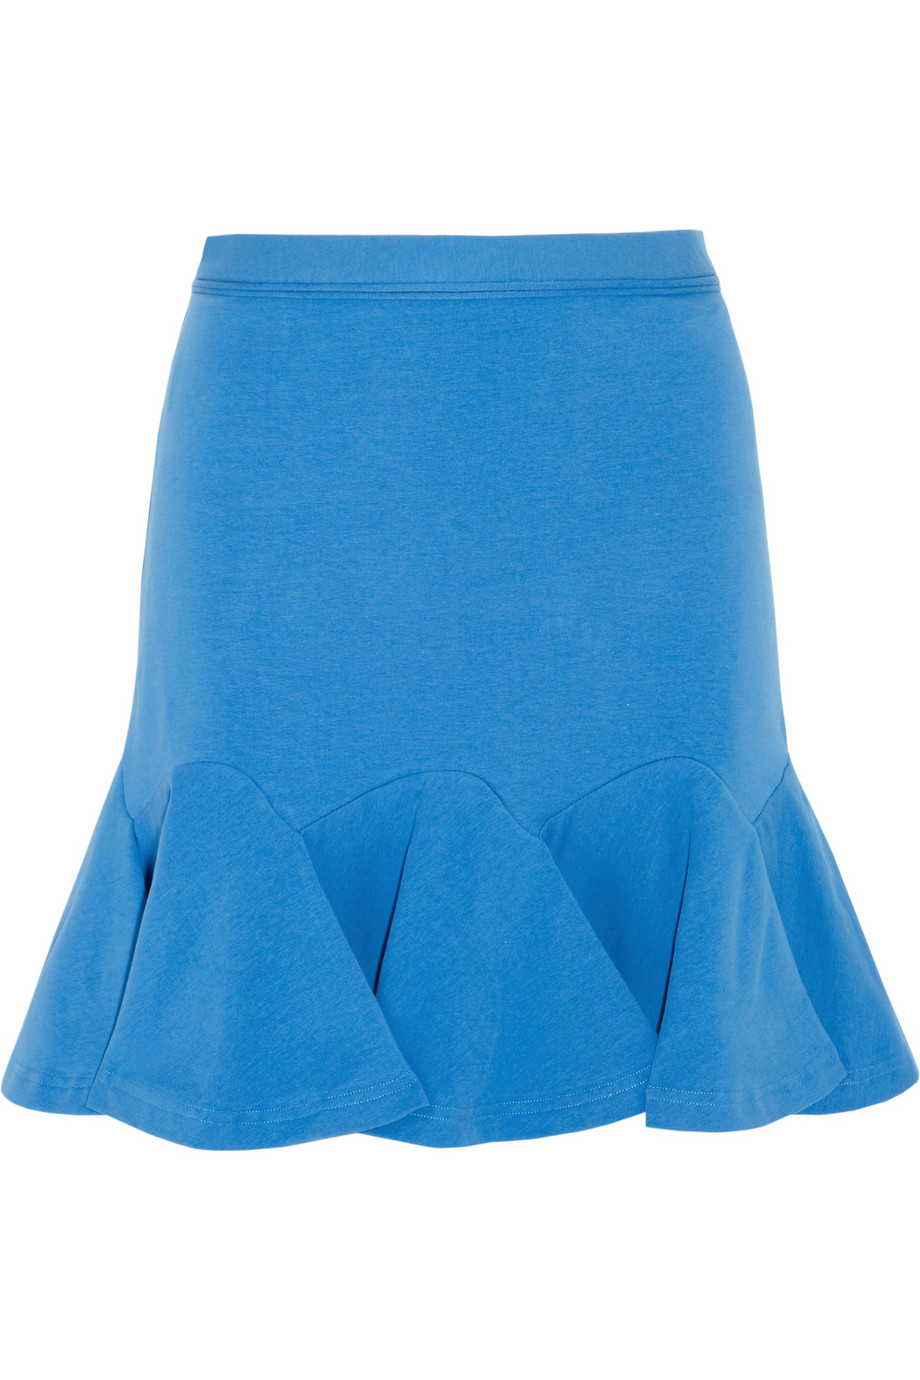 Carven Flared Stretch-cotton Mini Skirt in Blue | Lyst